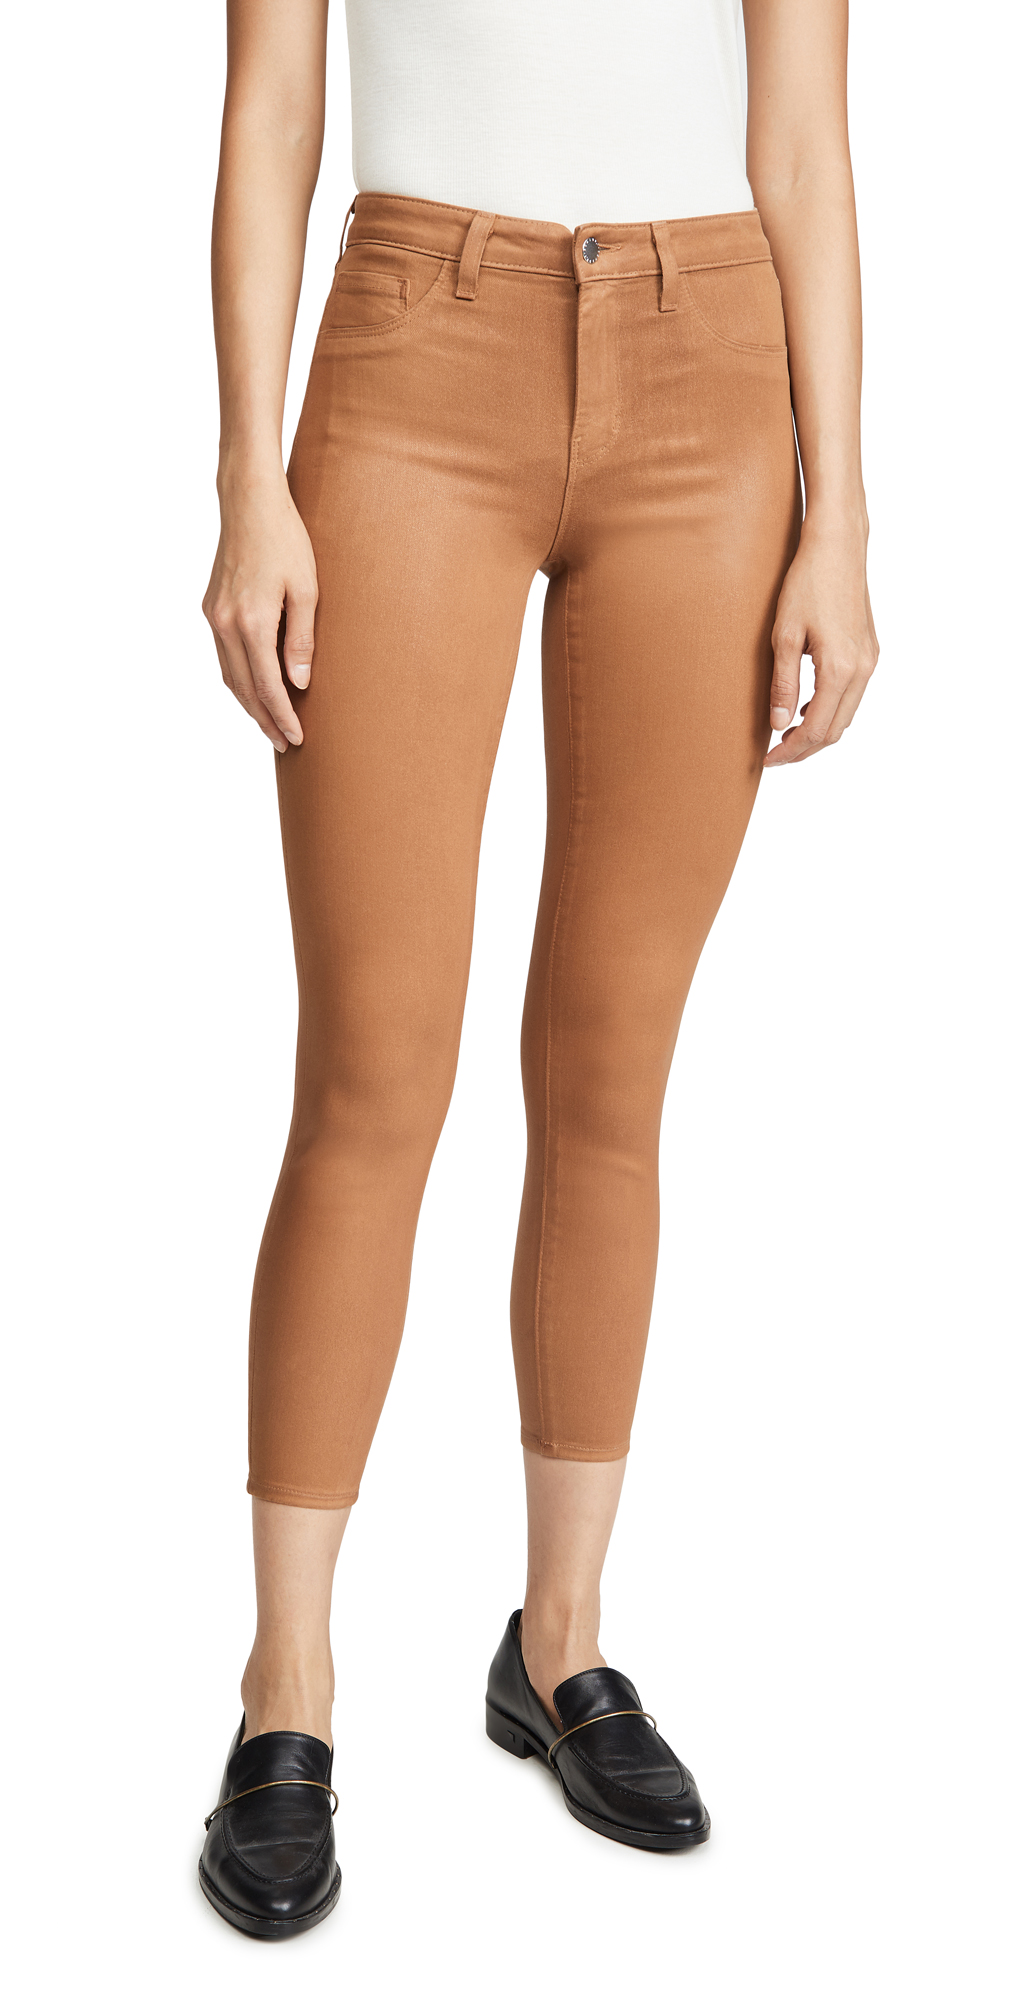 L'AGENCE Margot Skinny Coated Jeans